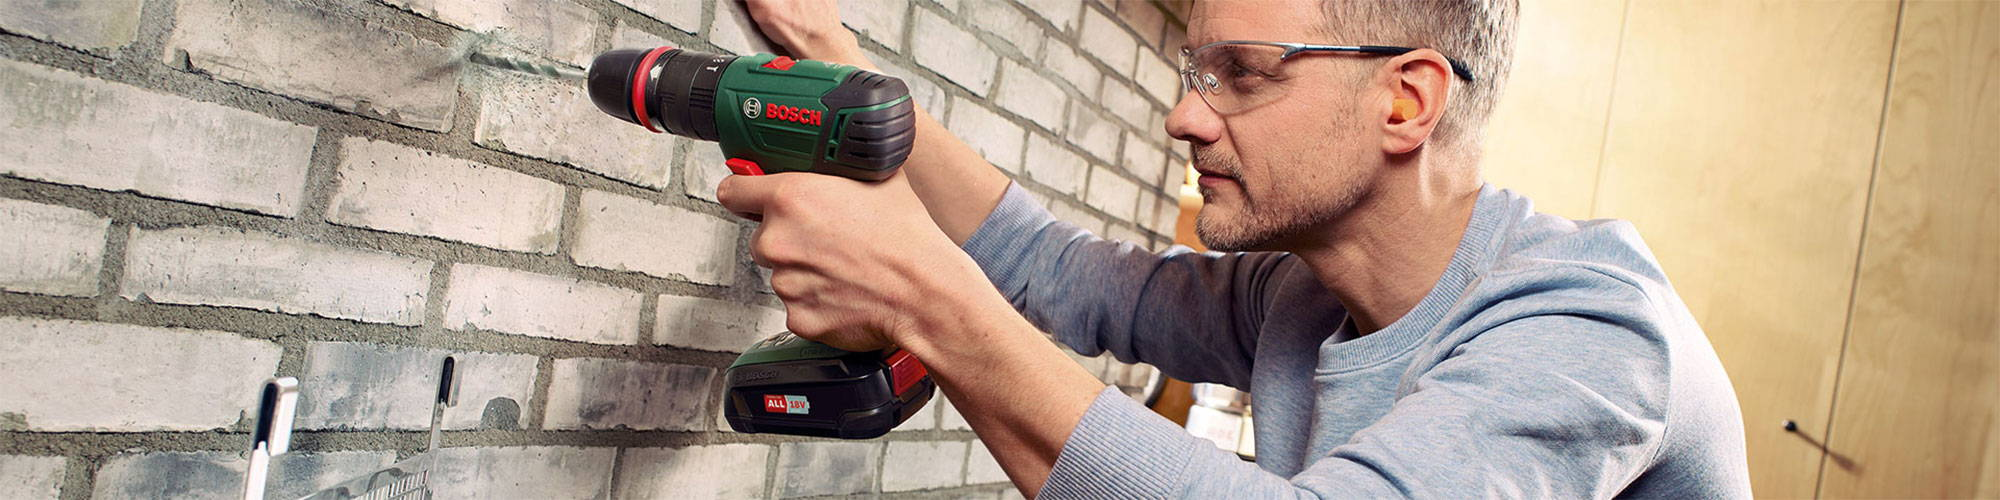 what is a cordless combi drill